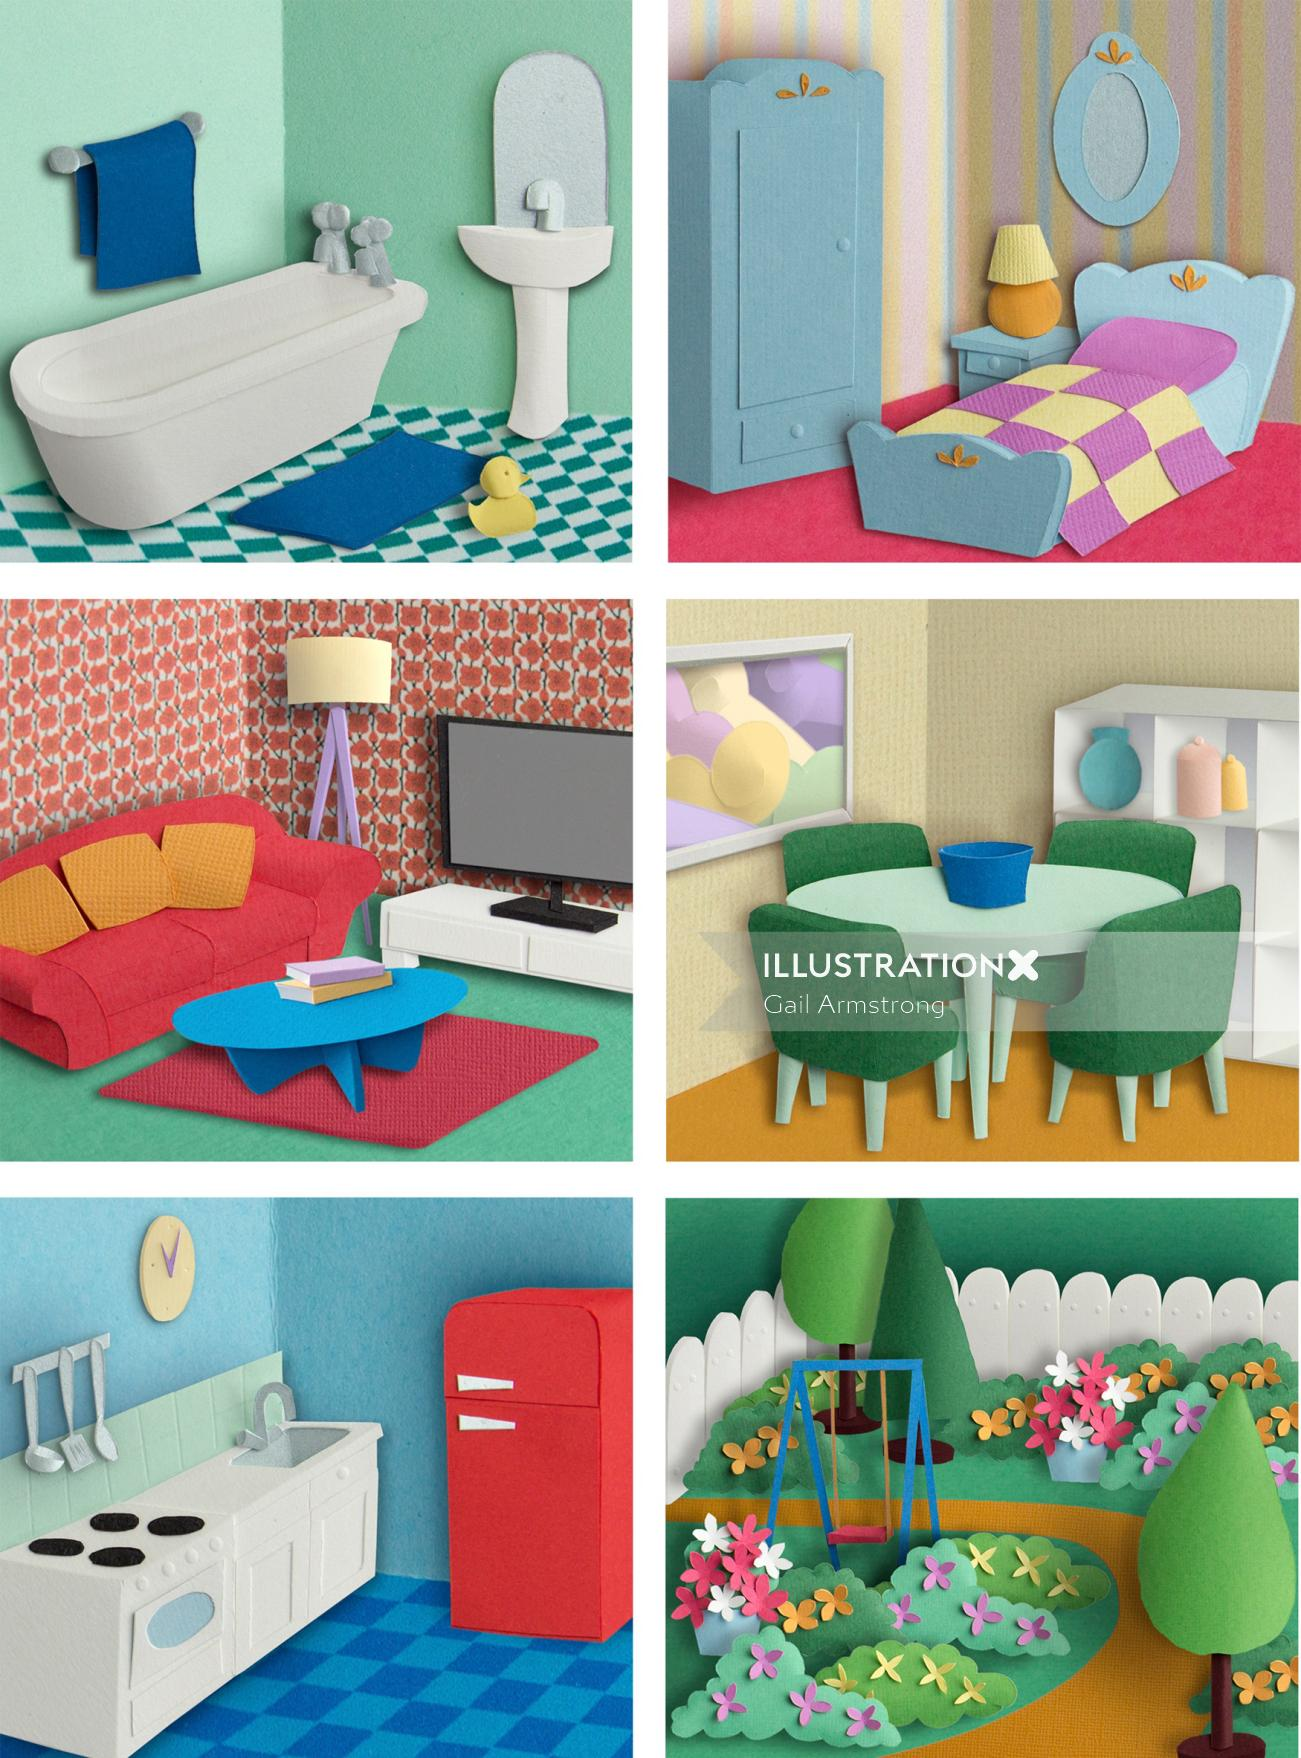 Conceptual Room sets from doll's house